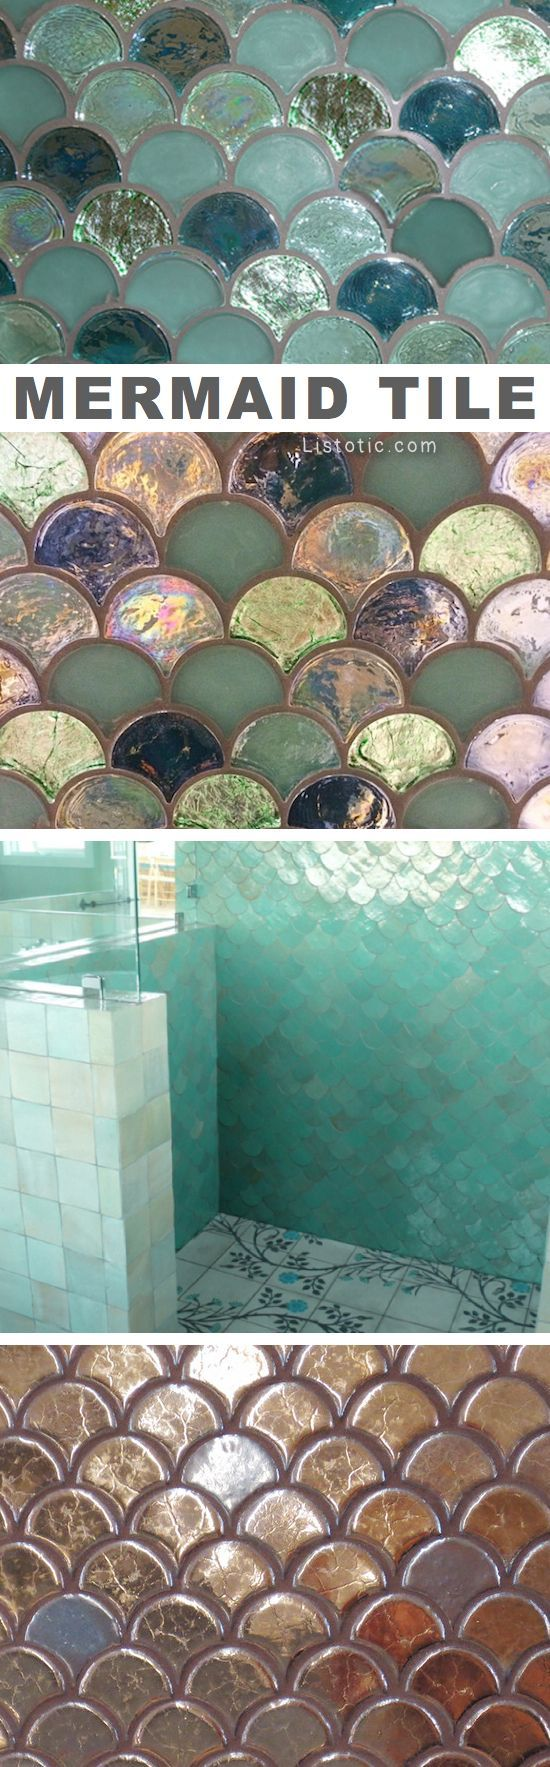 Mermaid bathroom - 11 Stunning Tile Ideas For Your Home I Love These Mermaid Tilemermaid Bathroombathroom